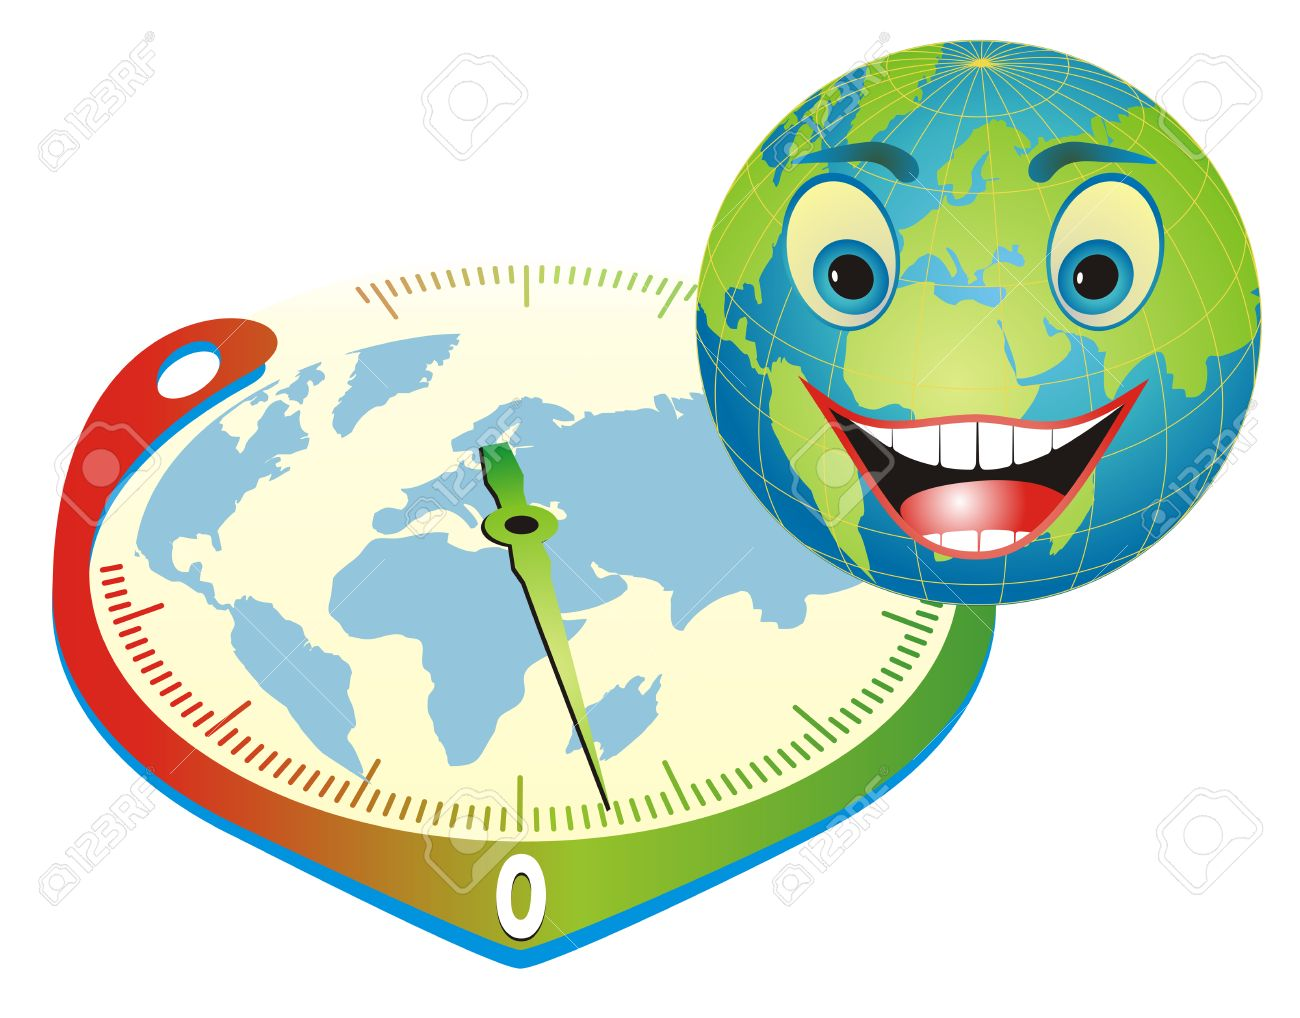 Cartoon illustration with happy globe and thermometer in clock form depicting the right way to save our planet. Stock Vector - 4745891